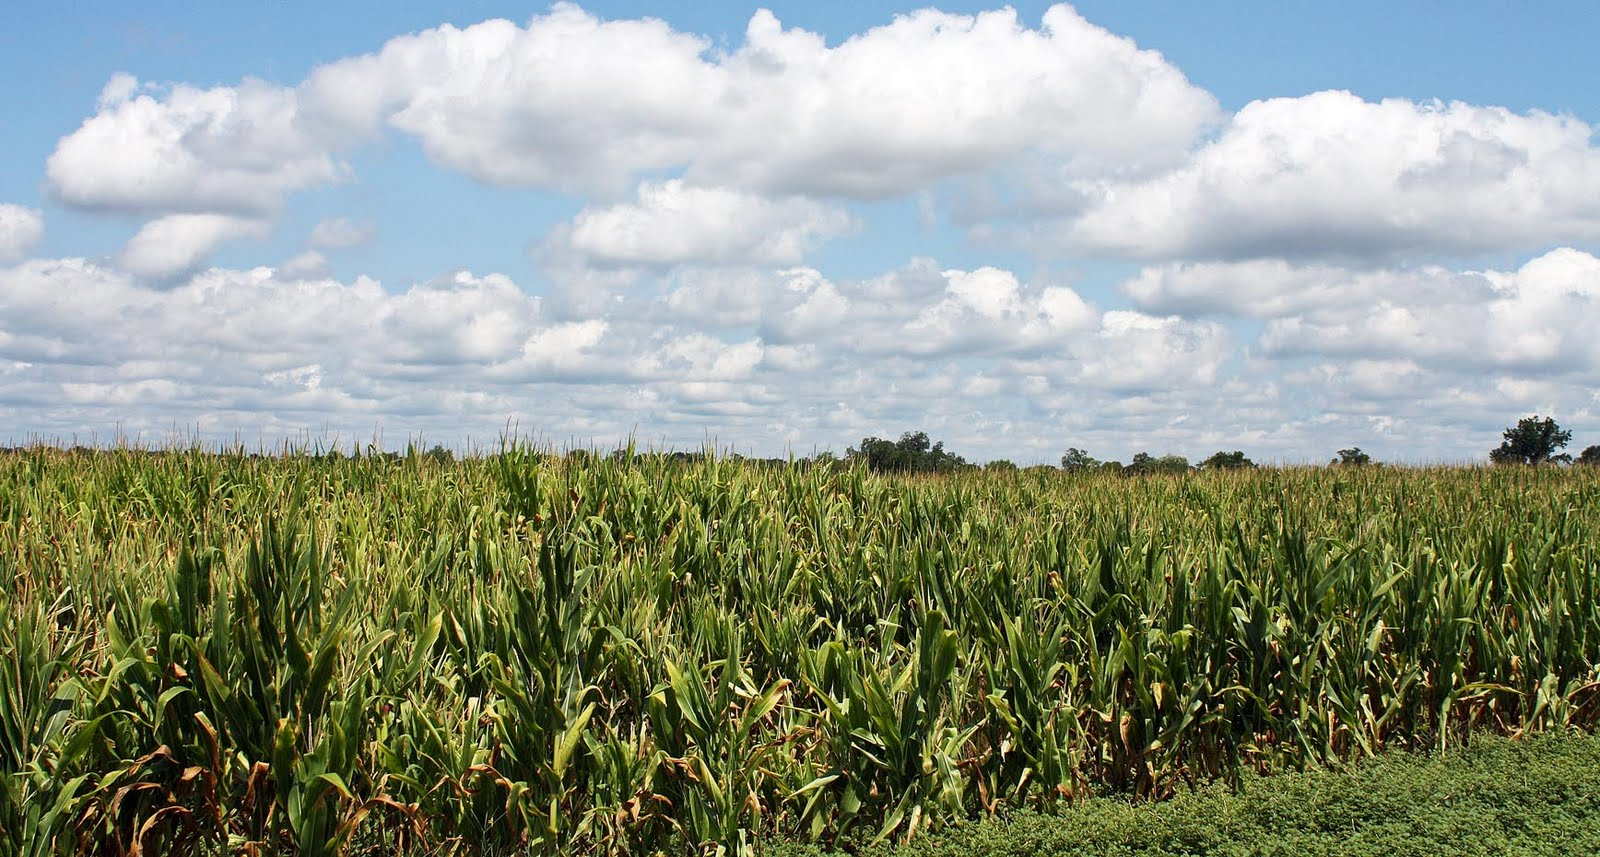 Cornfield Photos